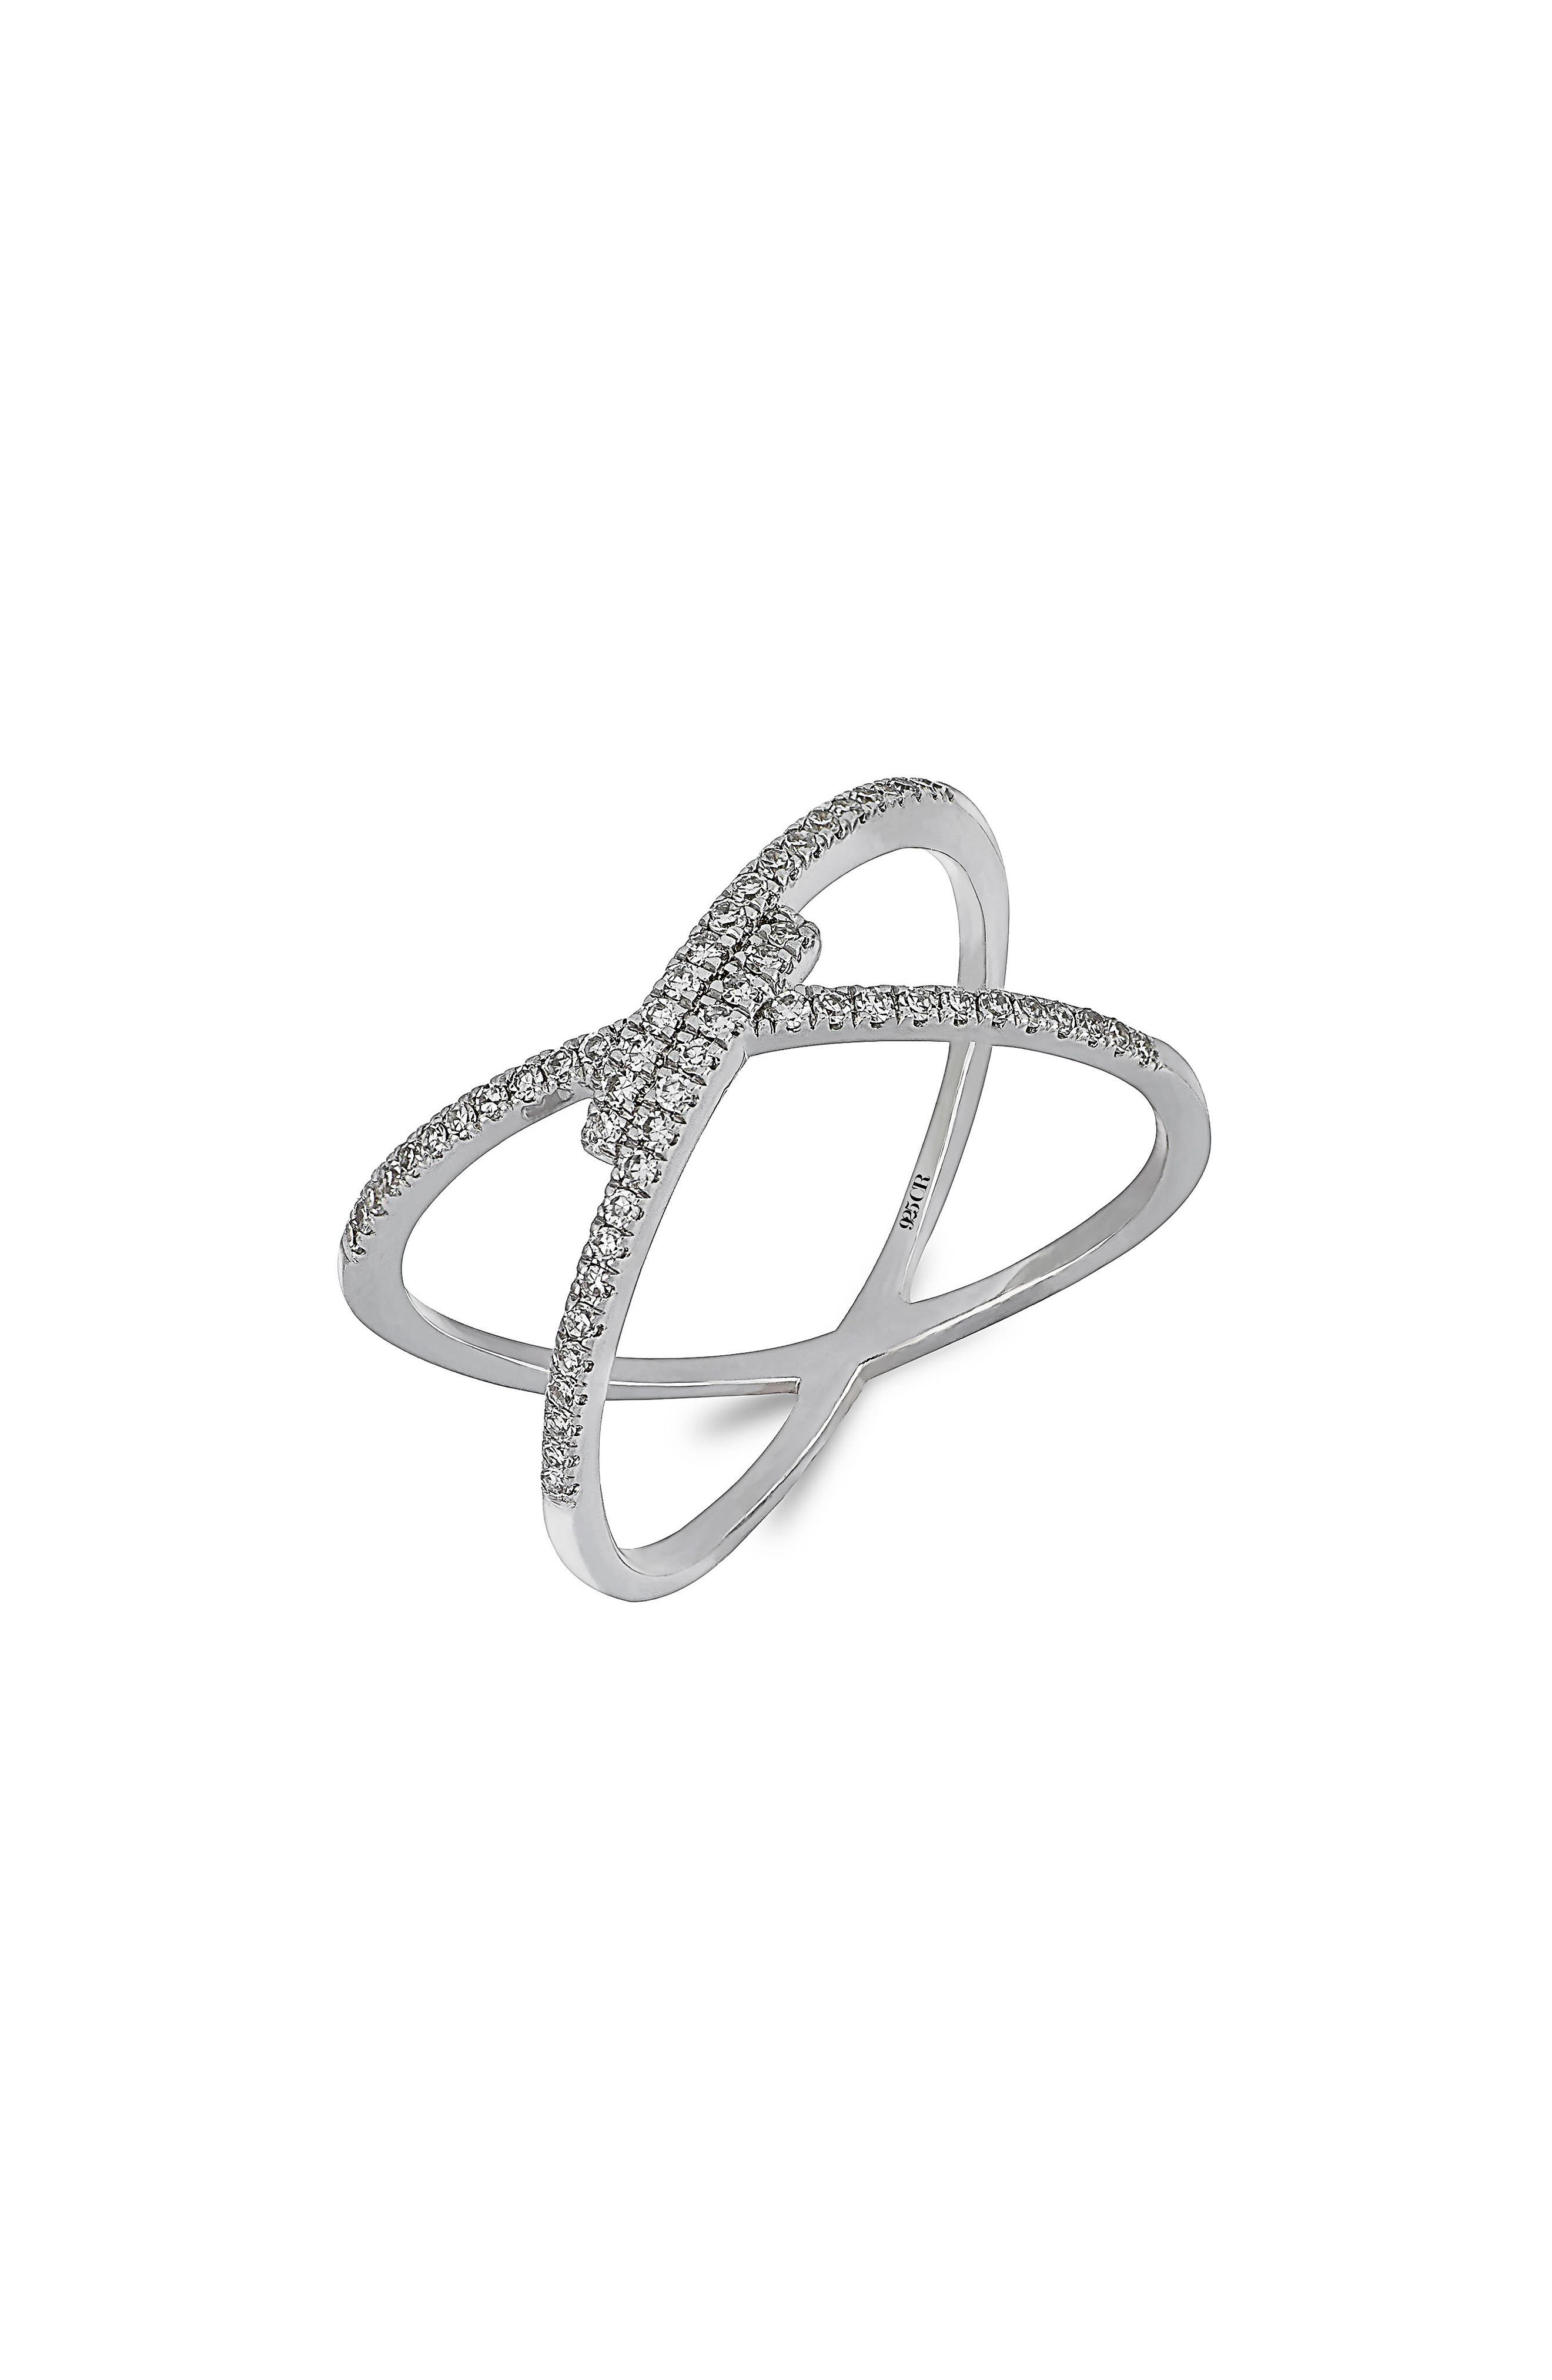 Carrière Crossover Diamond Ring,                         Main,                         color, 040